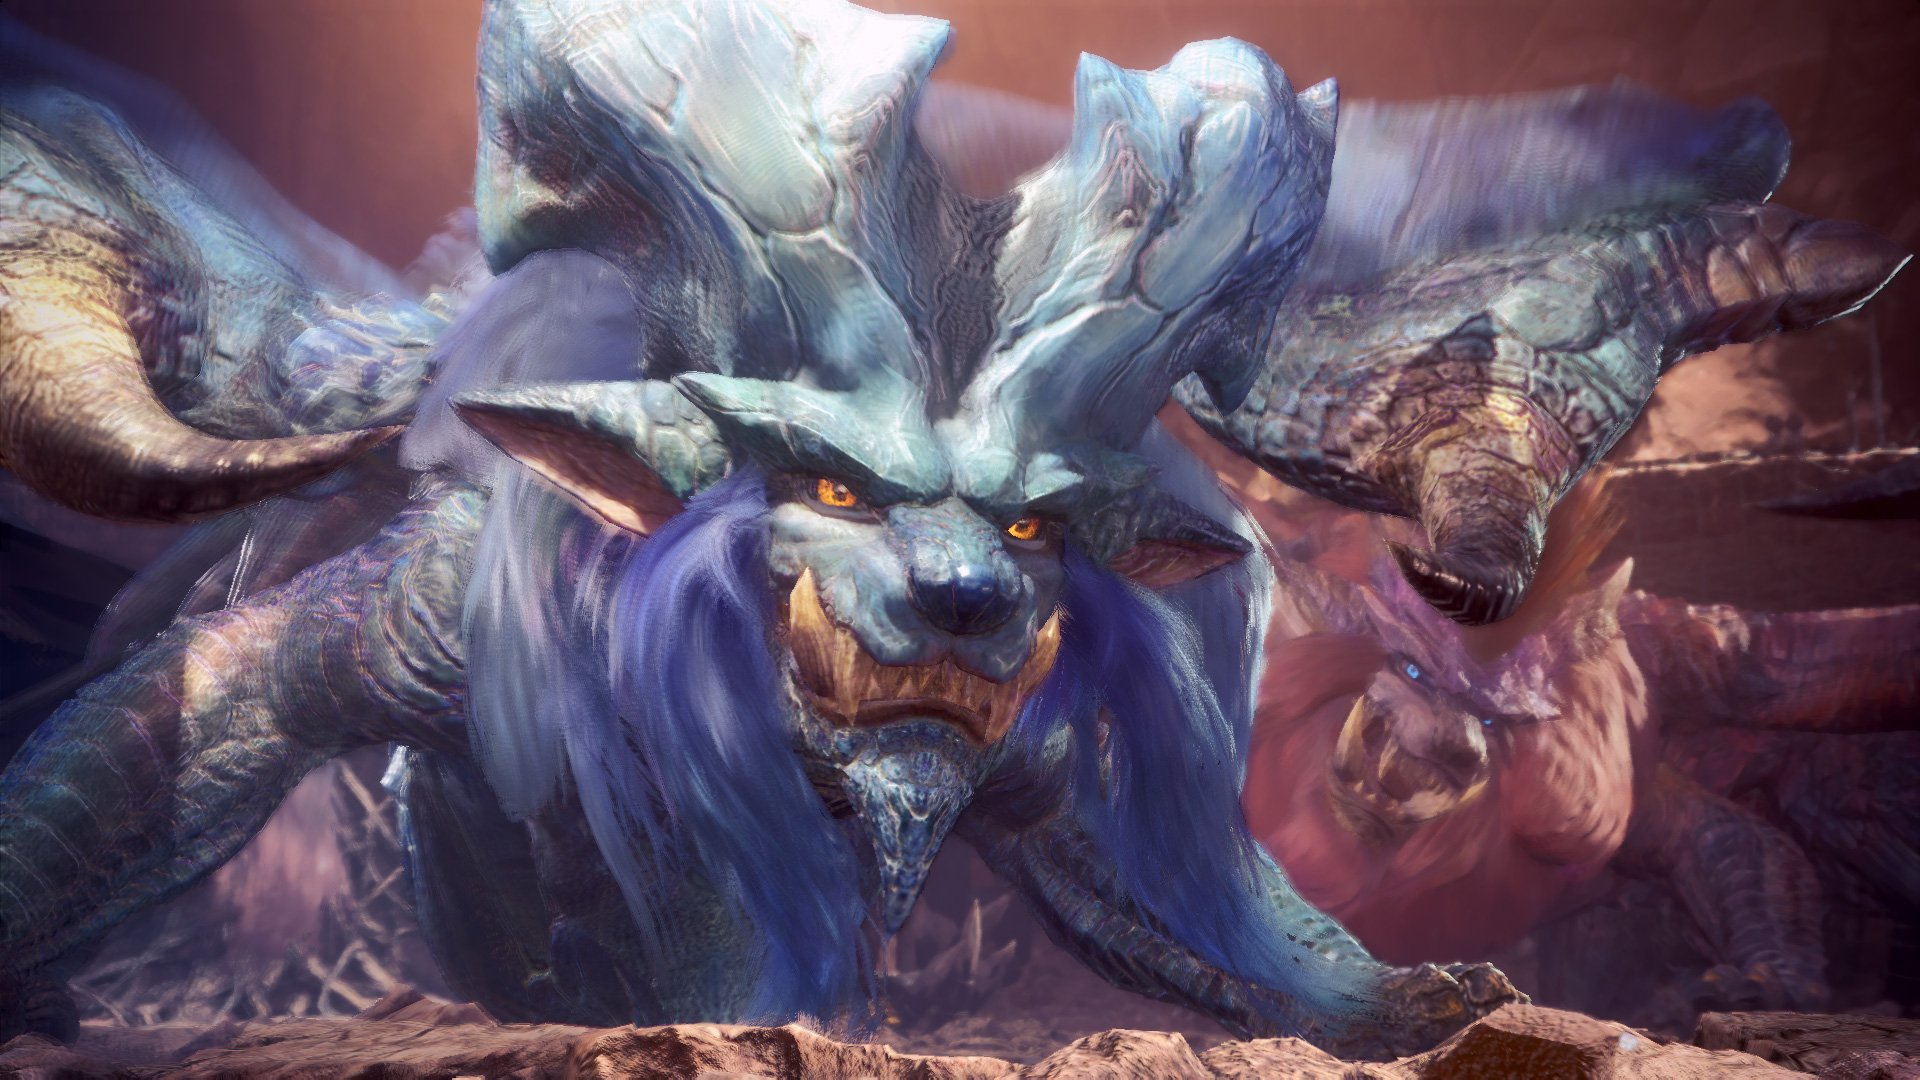 monster hunter world free update arriving today with new monster